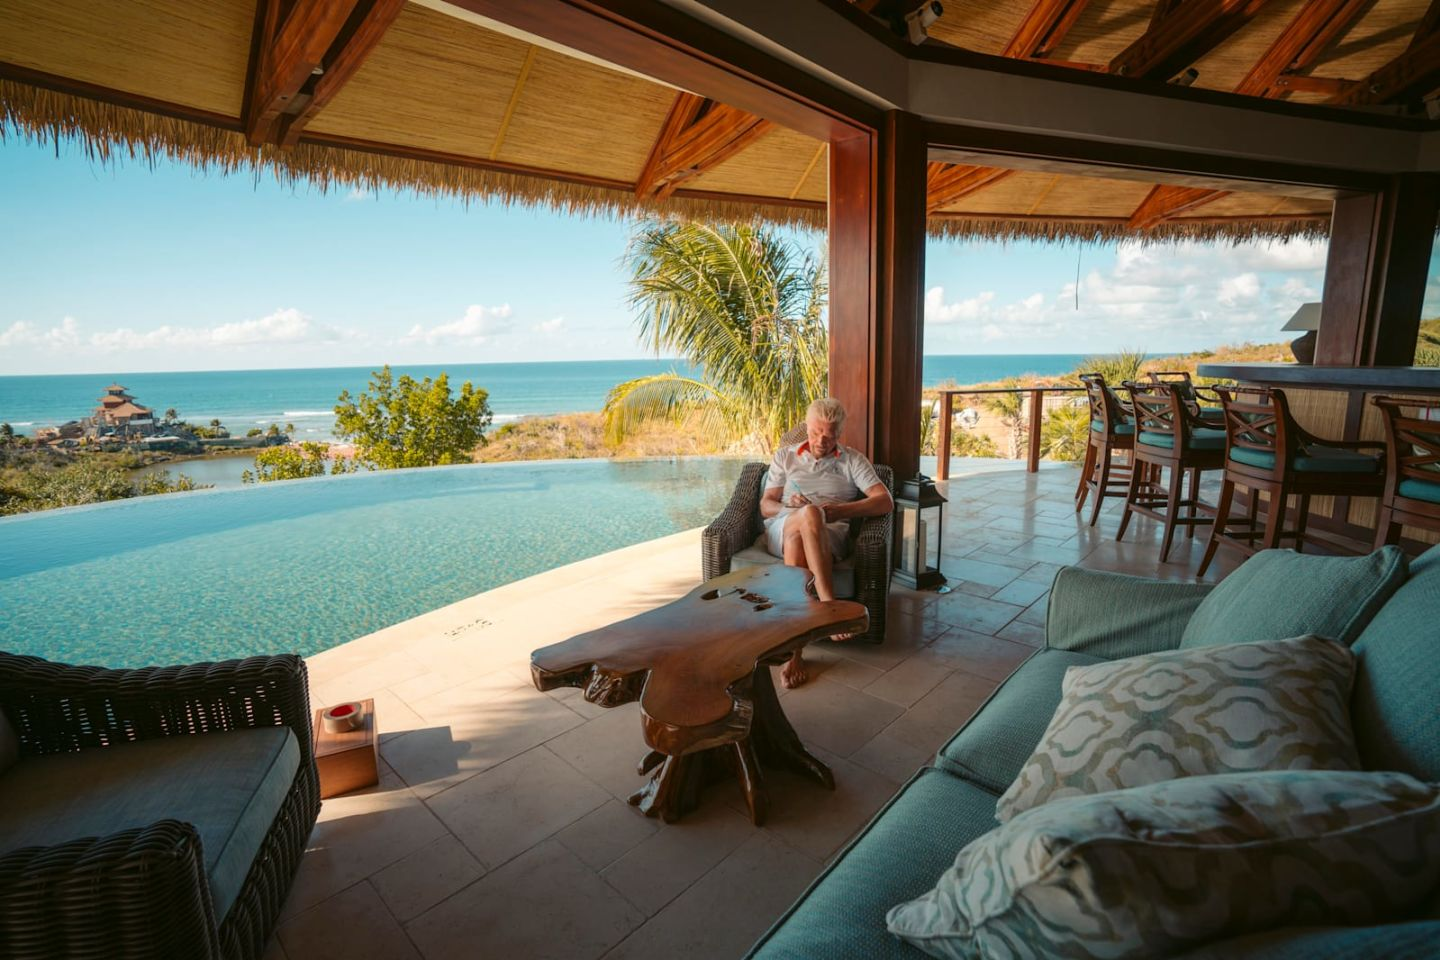 Richard Branson relaxes by the pool on Necker Island